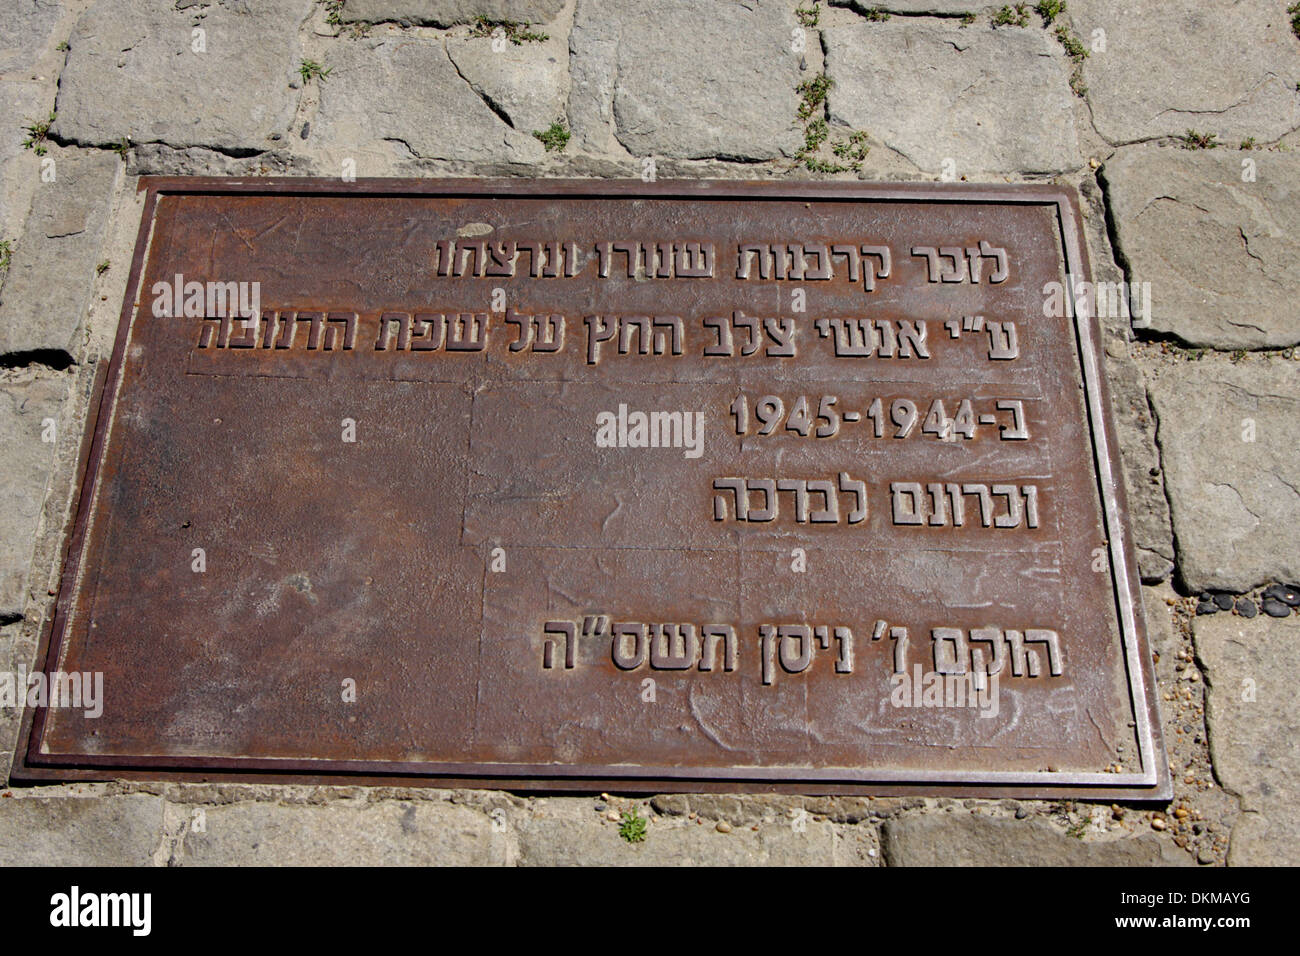 Plaque with text in Hebrew at the shoes on the Danube memorial to Hungarian Jews shot by Arrow Cross militiamen in 1944-1945 - Stock Image